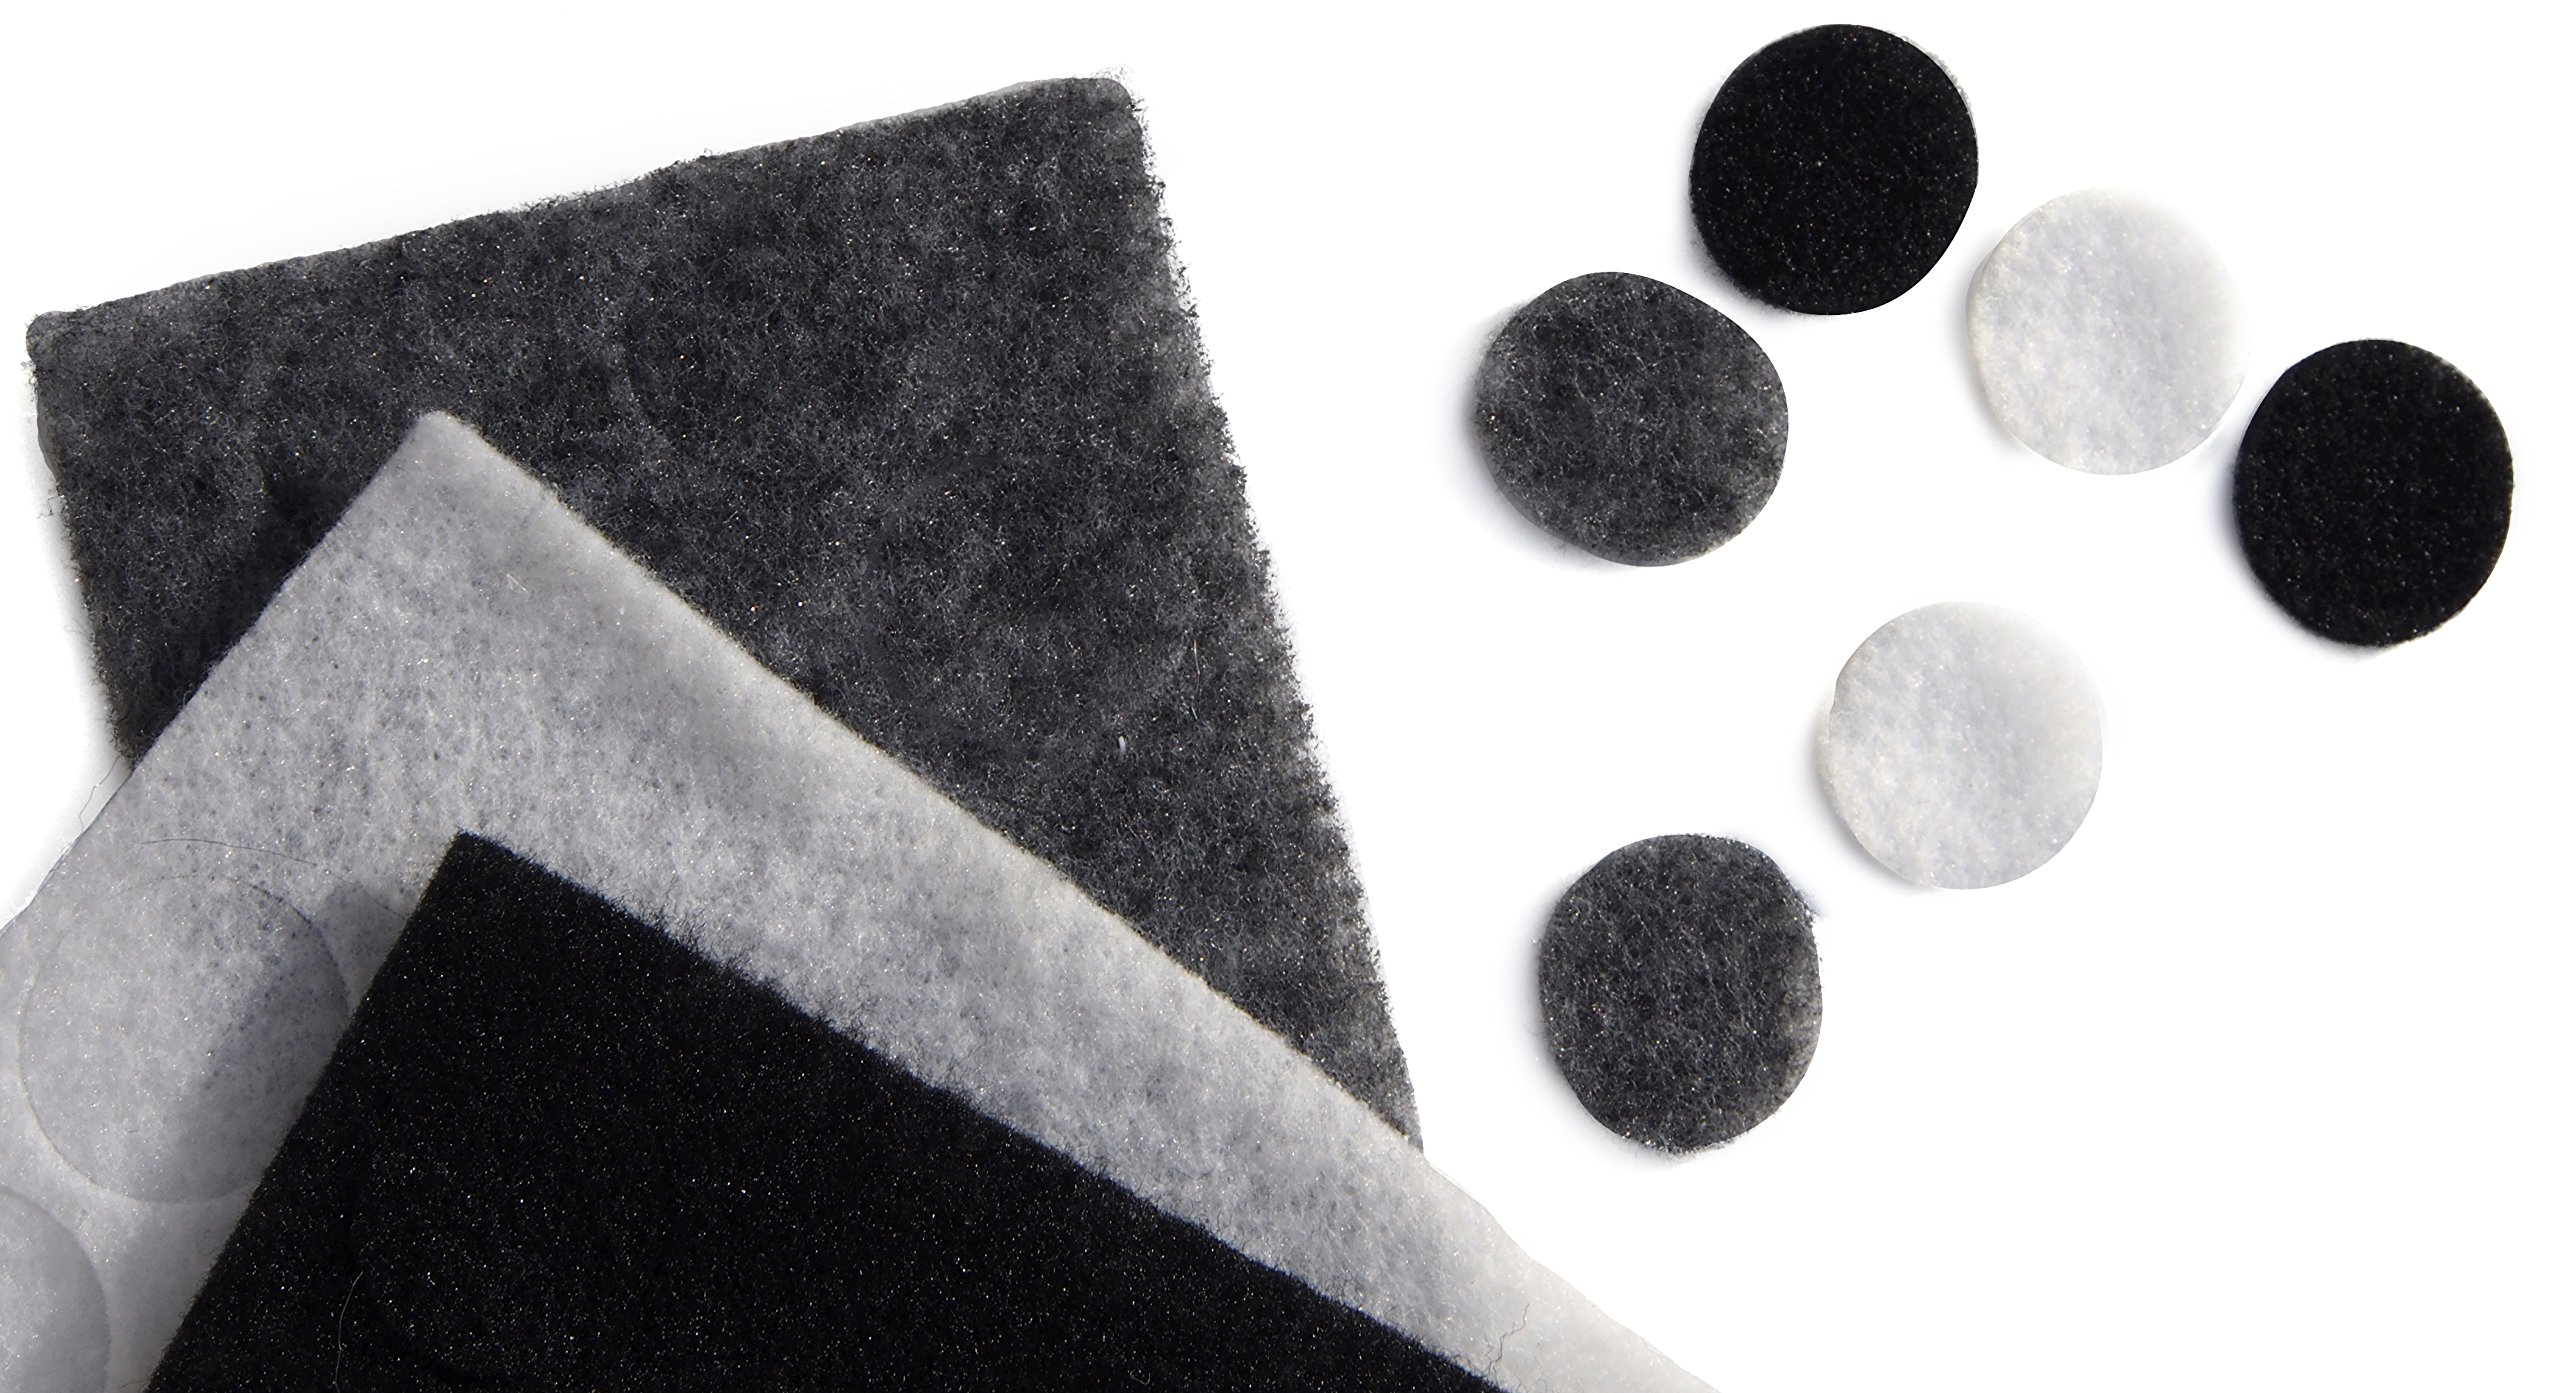 Rycote 065504 Undercover with Stickies and 30 Fabric Discs for Lavalier Microphones, 10 of Each Black/Grey/White